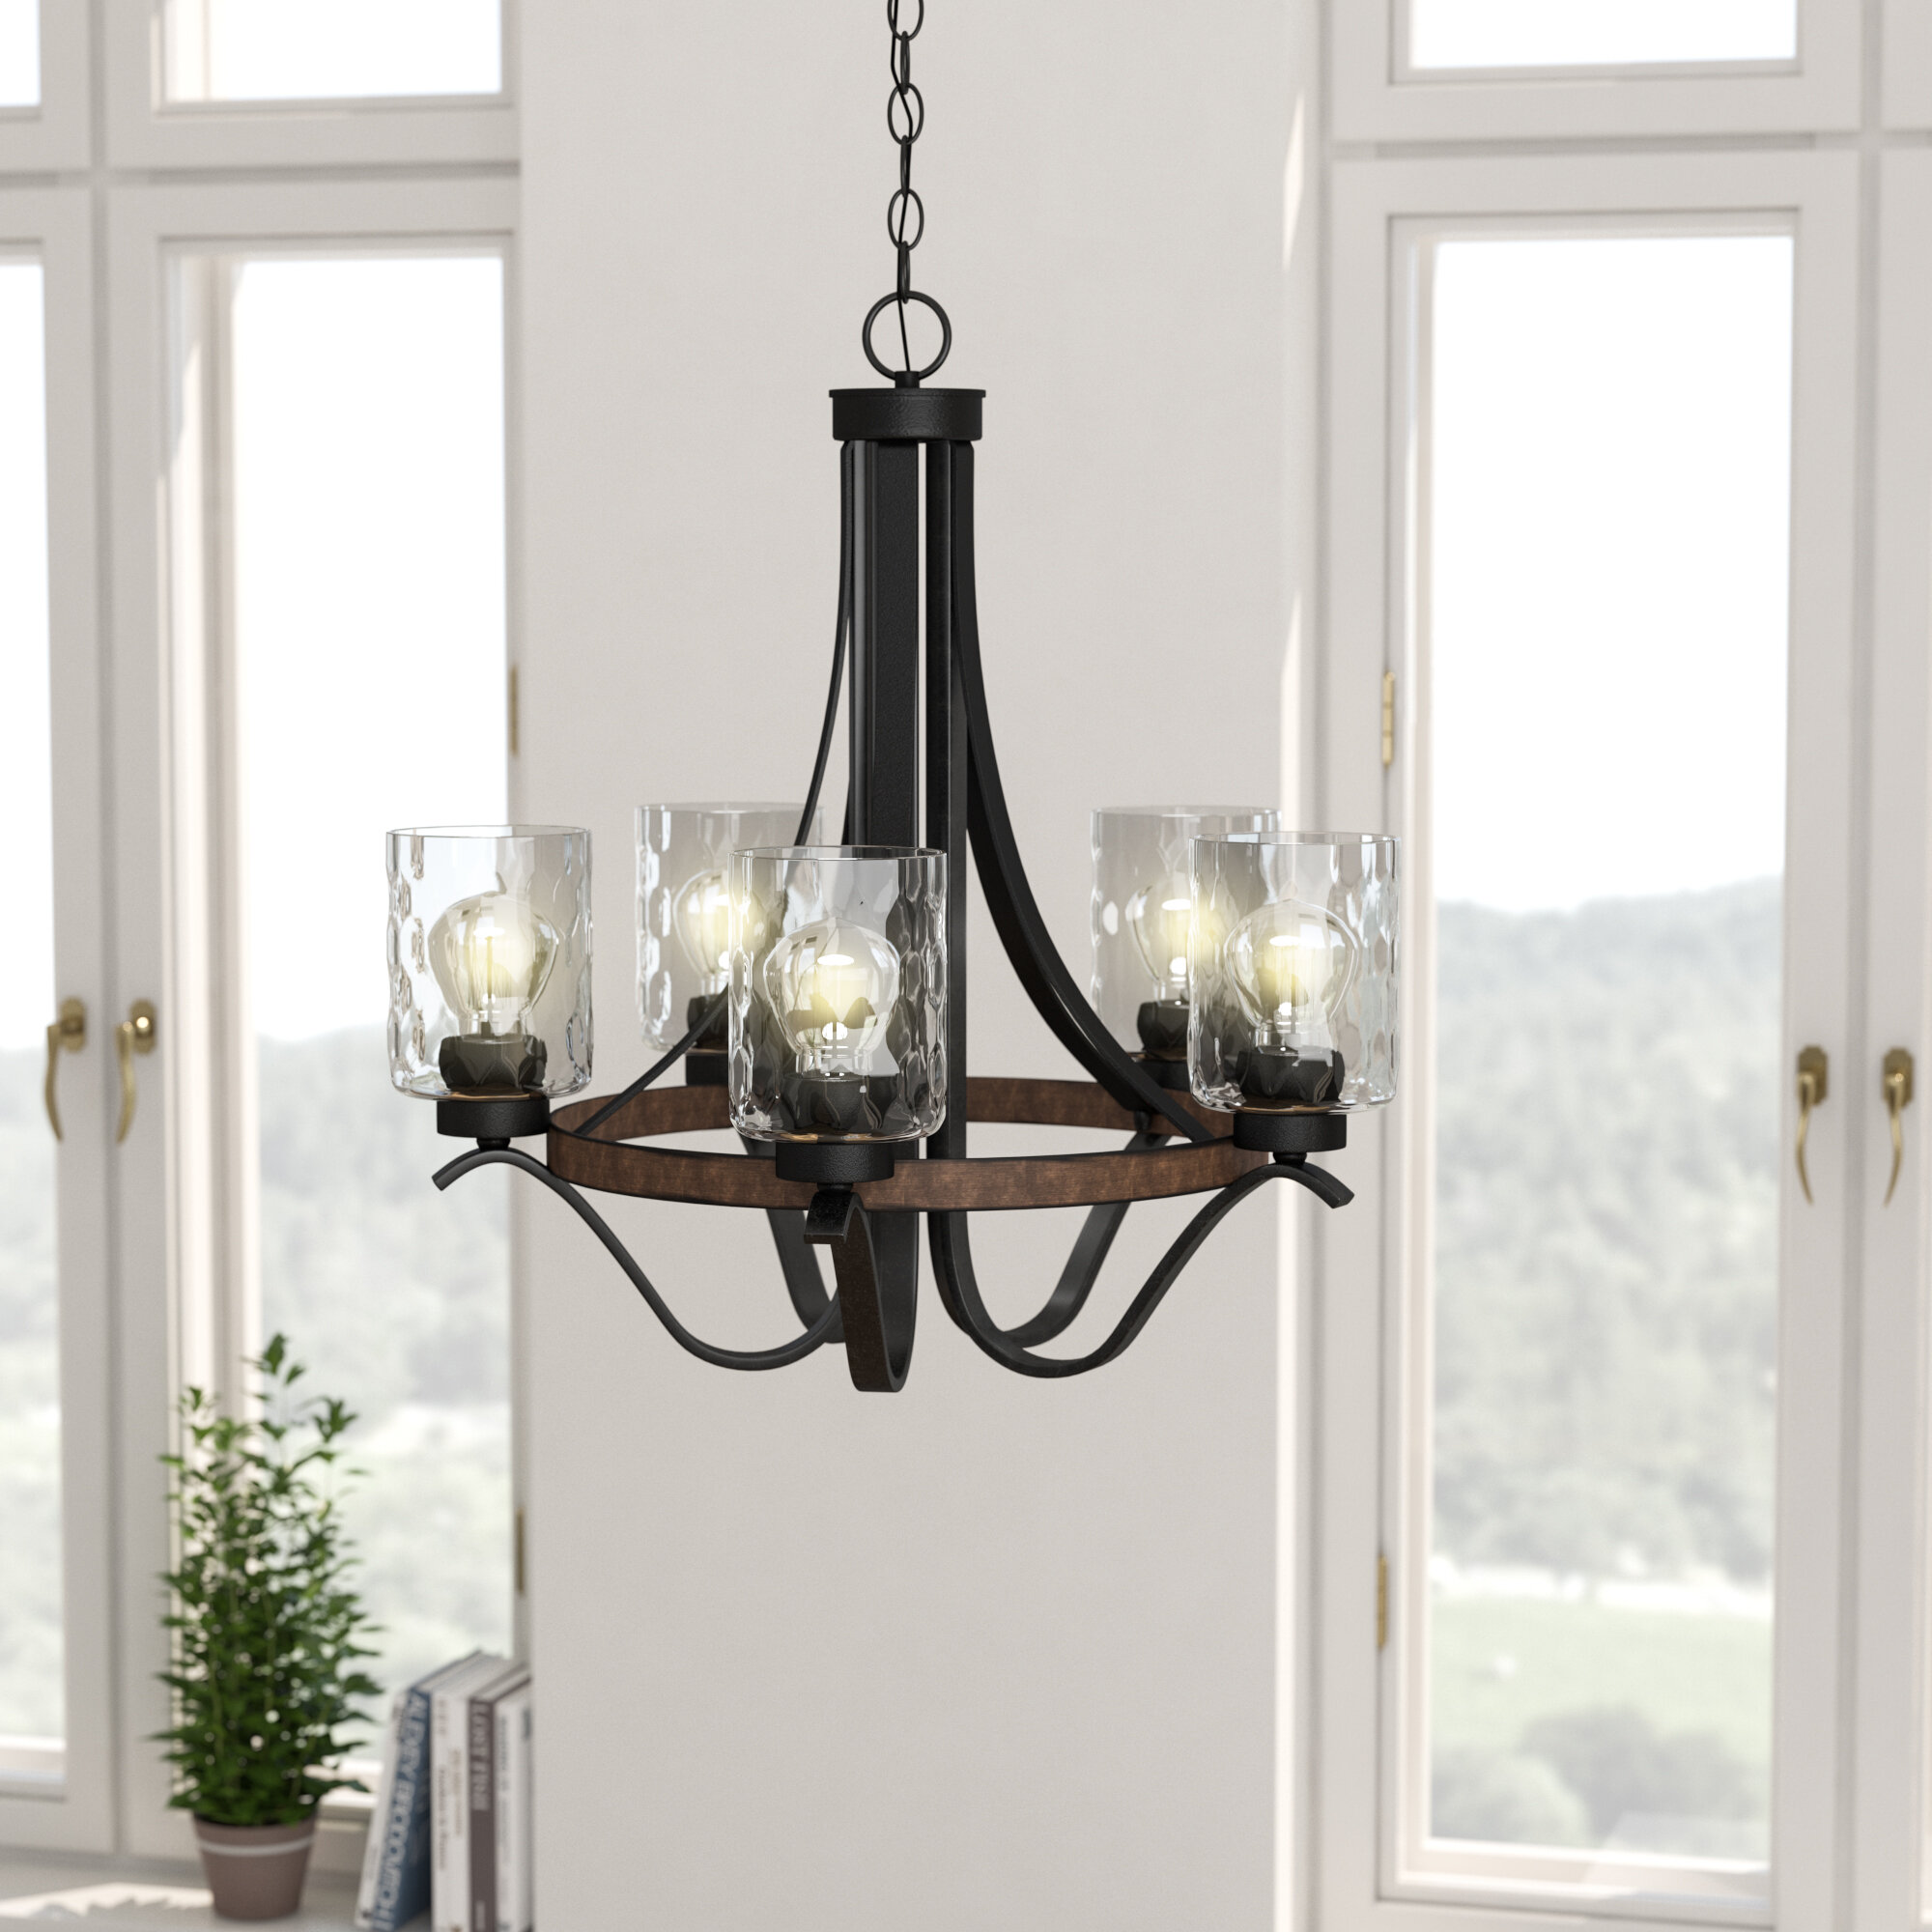 Laurel Foundry Modern Farmhouse Sabo Indoor 5 Light Candle Style